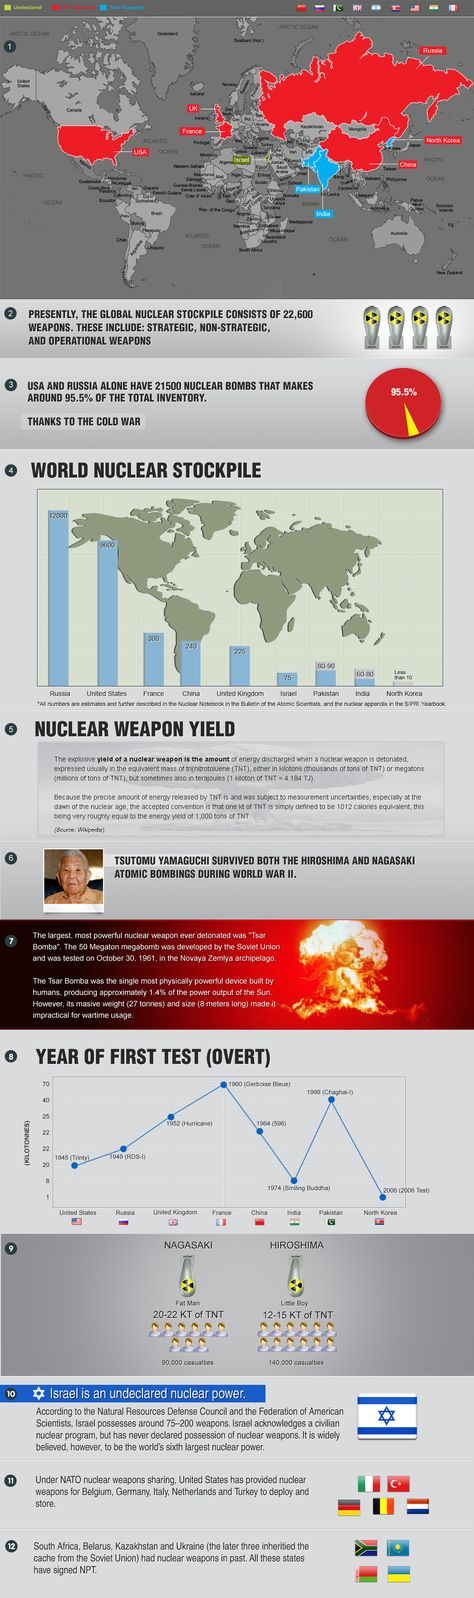 nihilism nuclear weapon and cold war Us nuclear weapons target list from the cold war declassified for the first nuclear weapon ever tested was at the opening of the war.